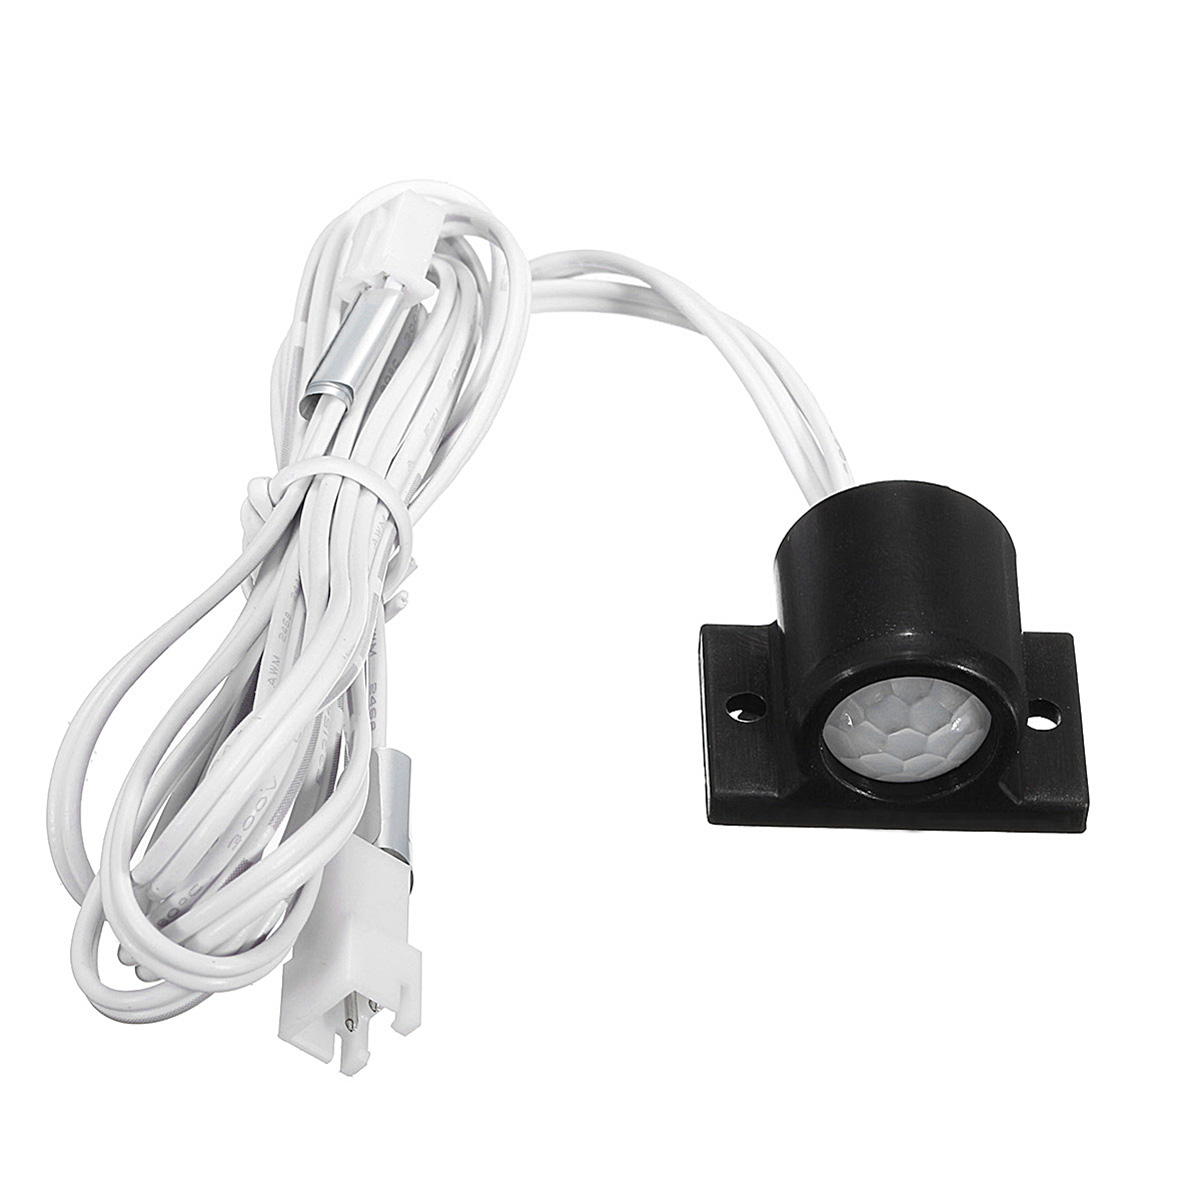 The Cheapest Price 140 Degree Mini Outdoor Adjustable Auto Pir Infrared Motion Sensor Detector For Led Light Strip Switch Lighting Dc 3-12v 2a Auto Replacement Parts Abs Sensor